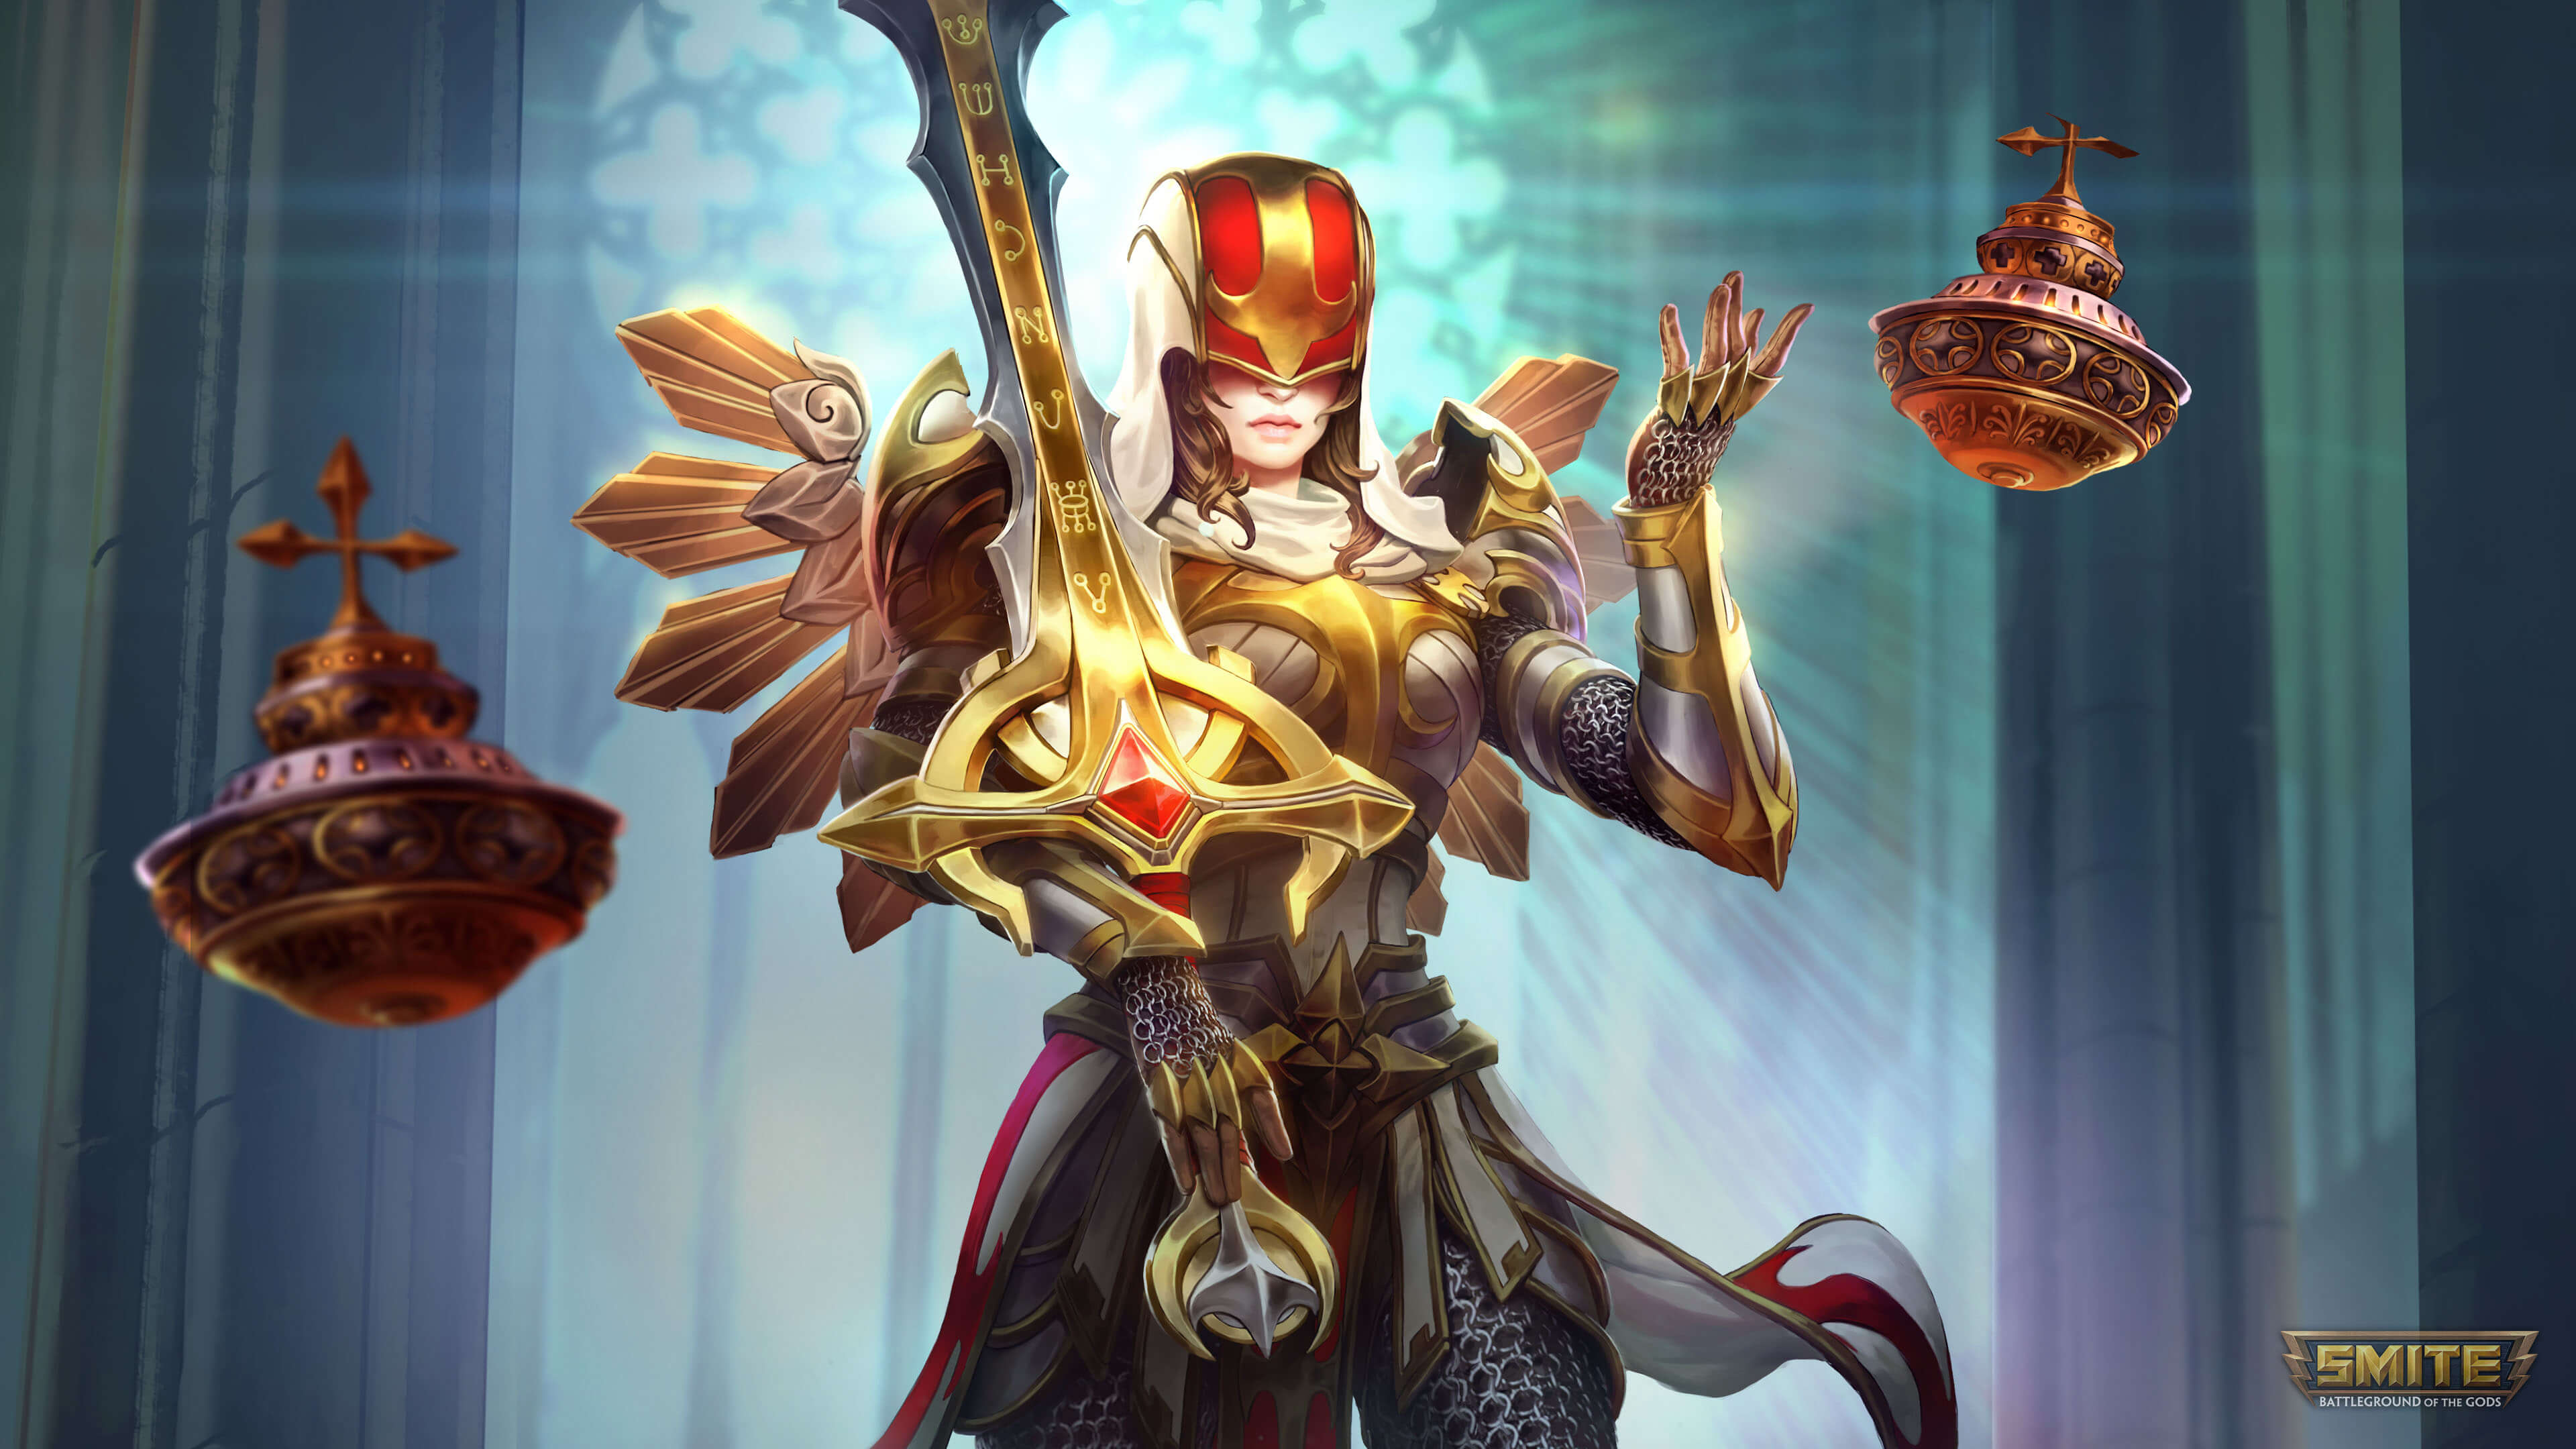 Nemesis Smite awesome pictures